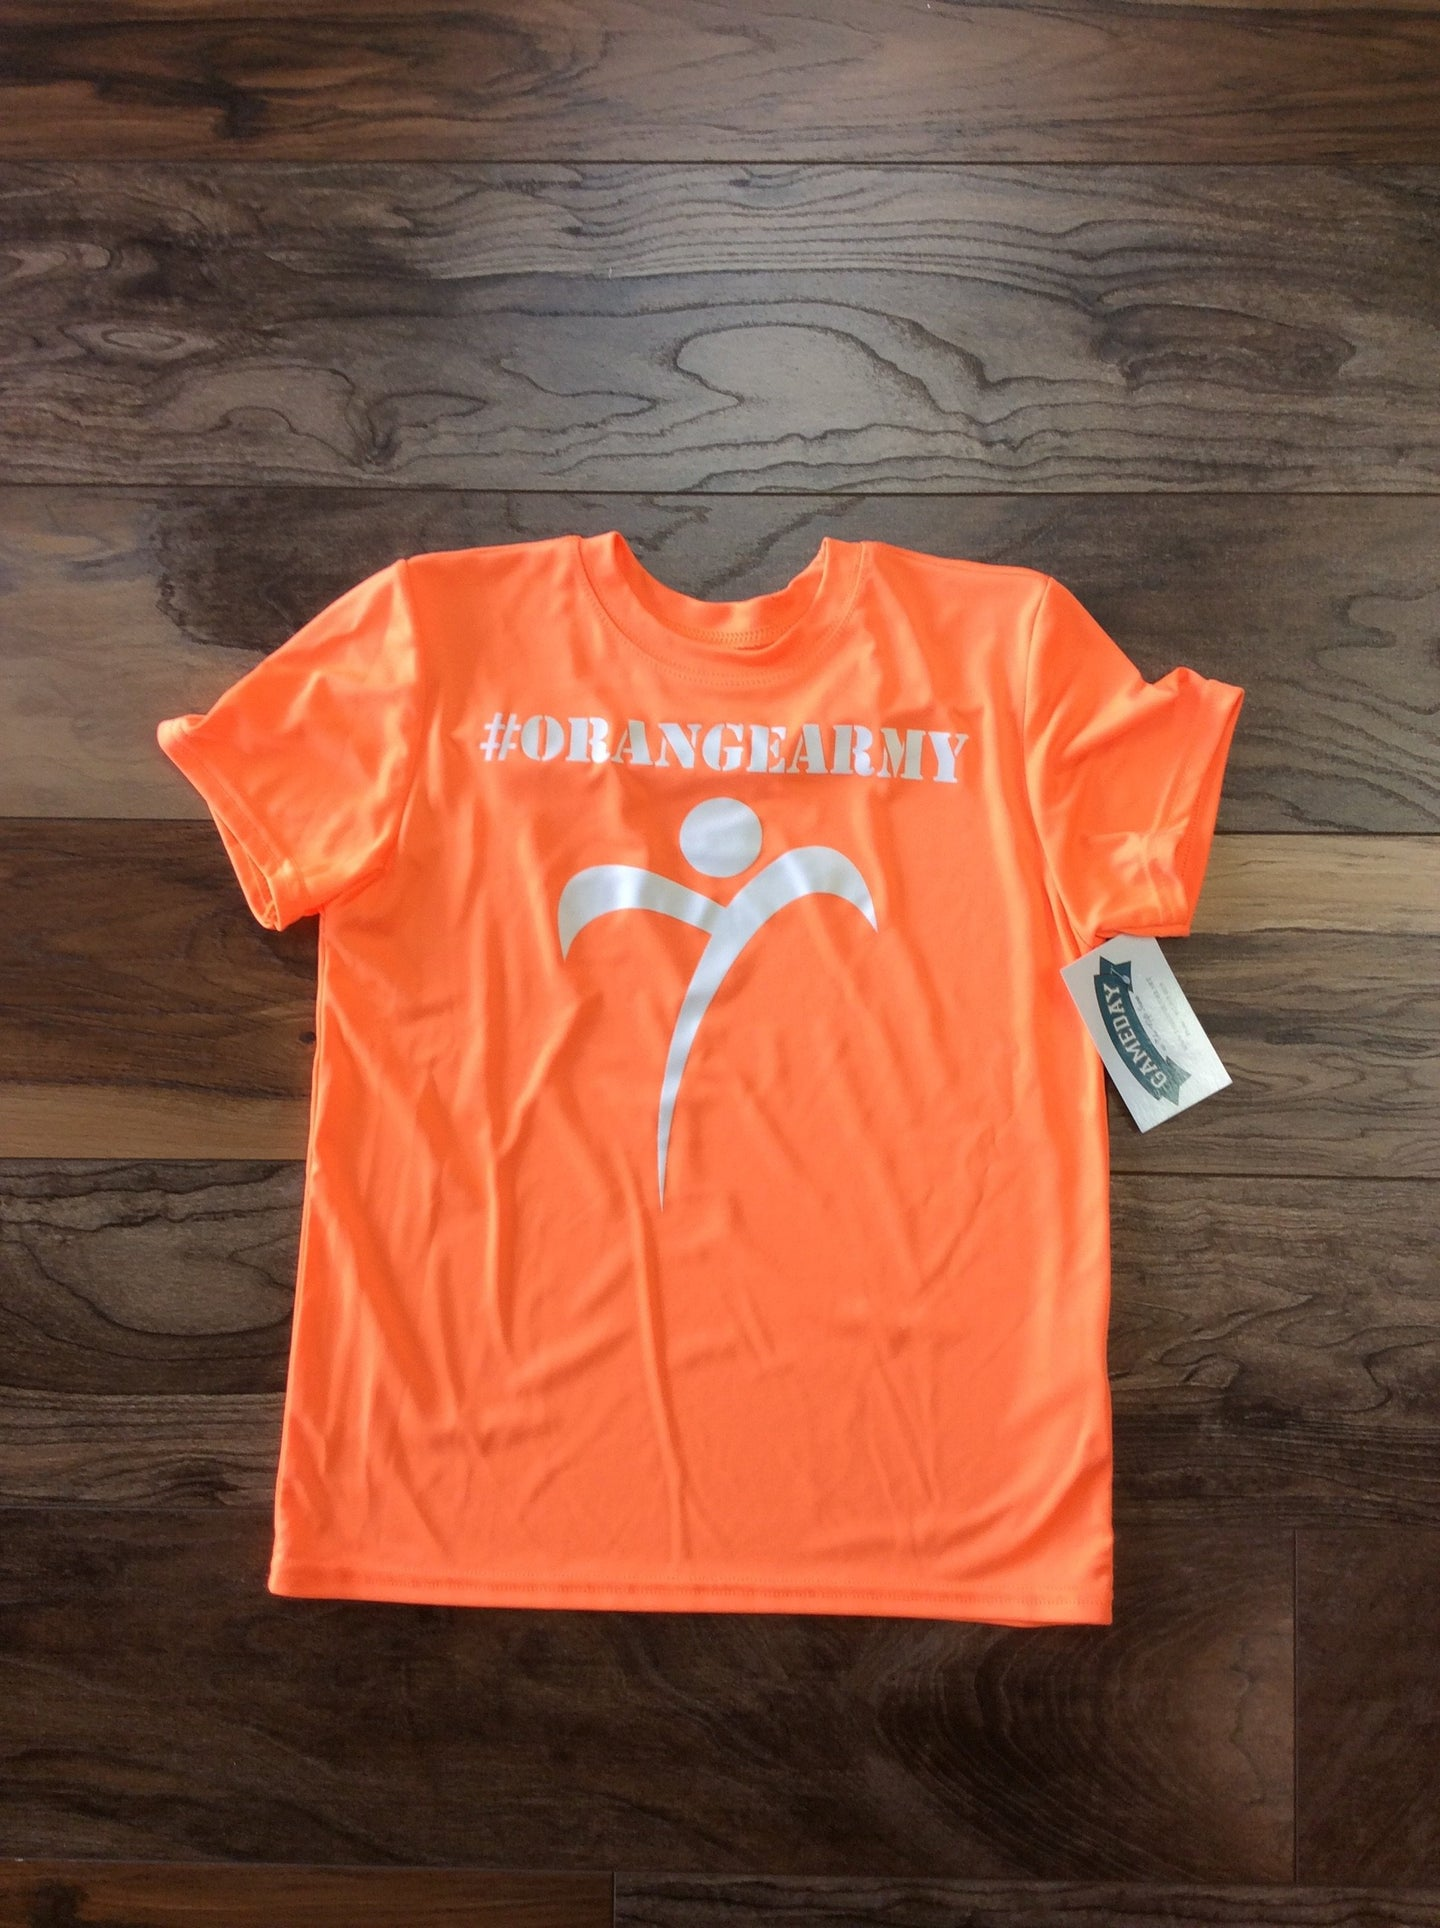 TF - Orange Army Shirt